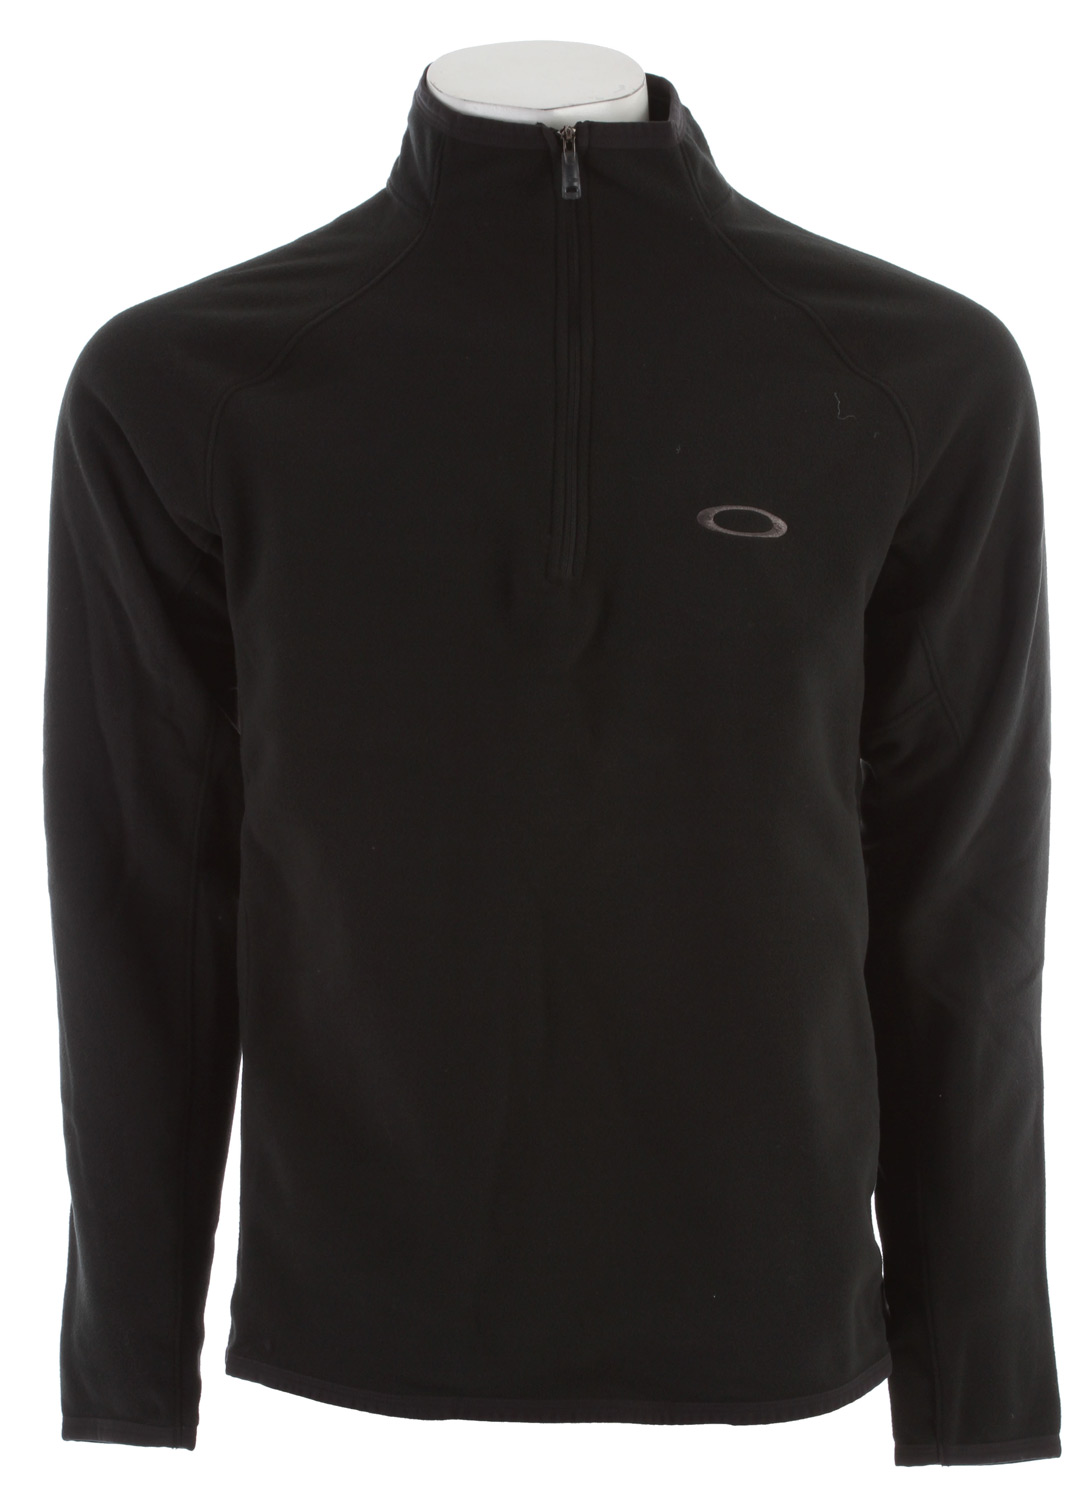 Warmth without the weight the Shelf Life is a half zip fleece with an 80/20 DWR finishKey Features of the Oakley Shelf Life Fleece: 80/20 DWR Stretch Moisture Management Regular fit 100% Polyester - $38.95